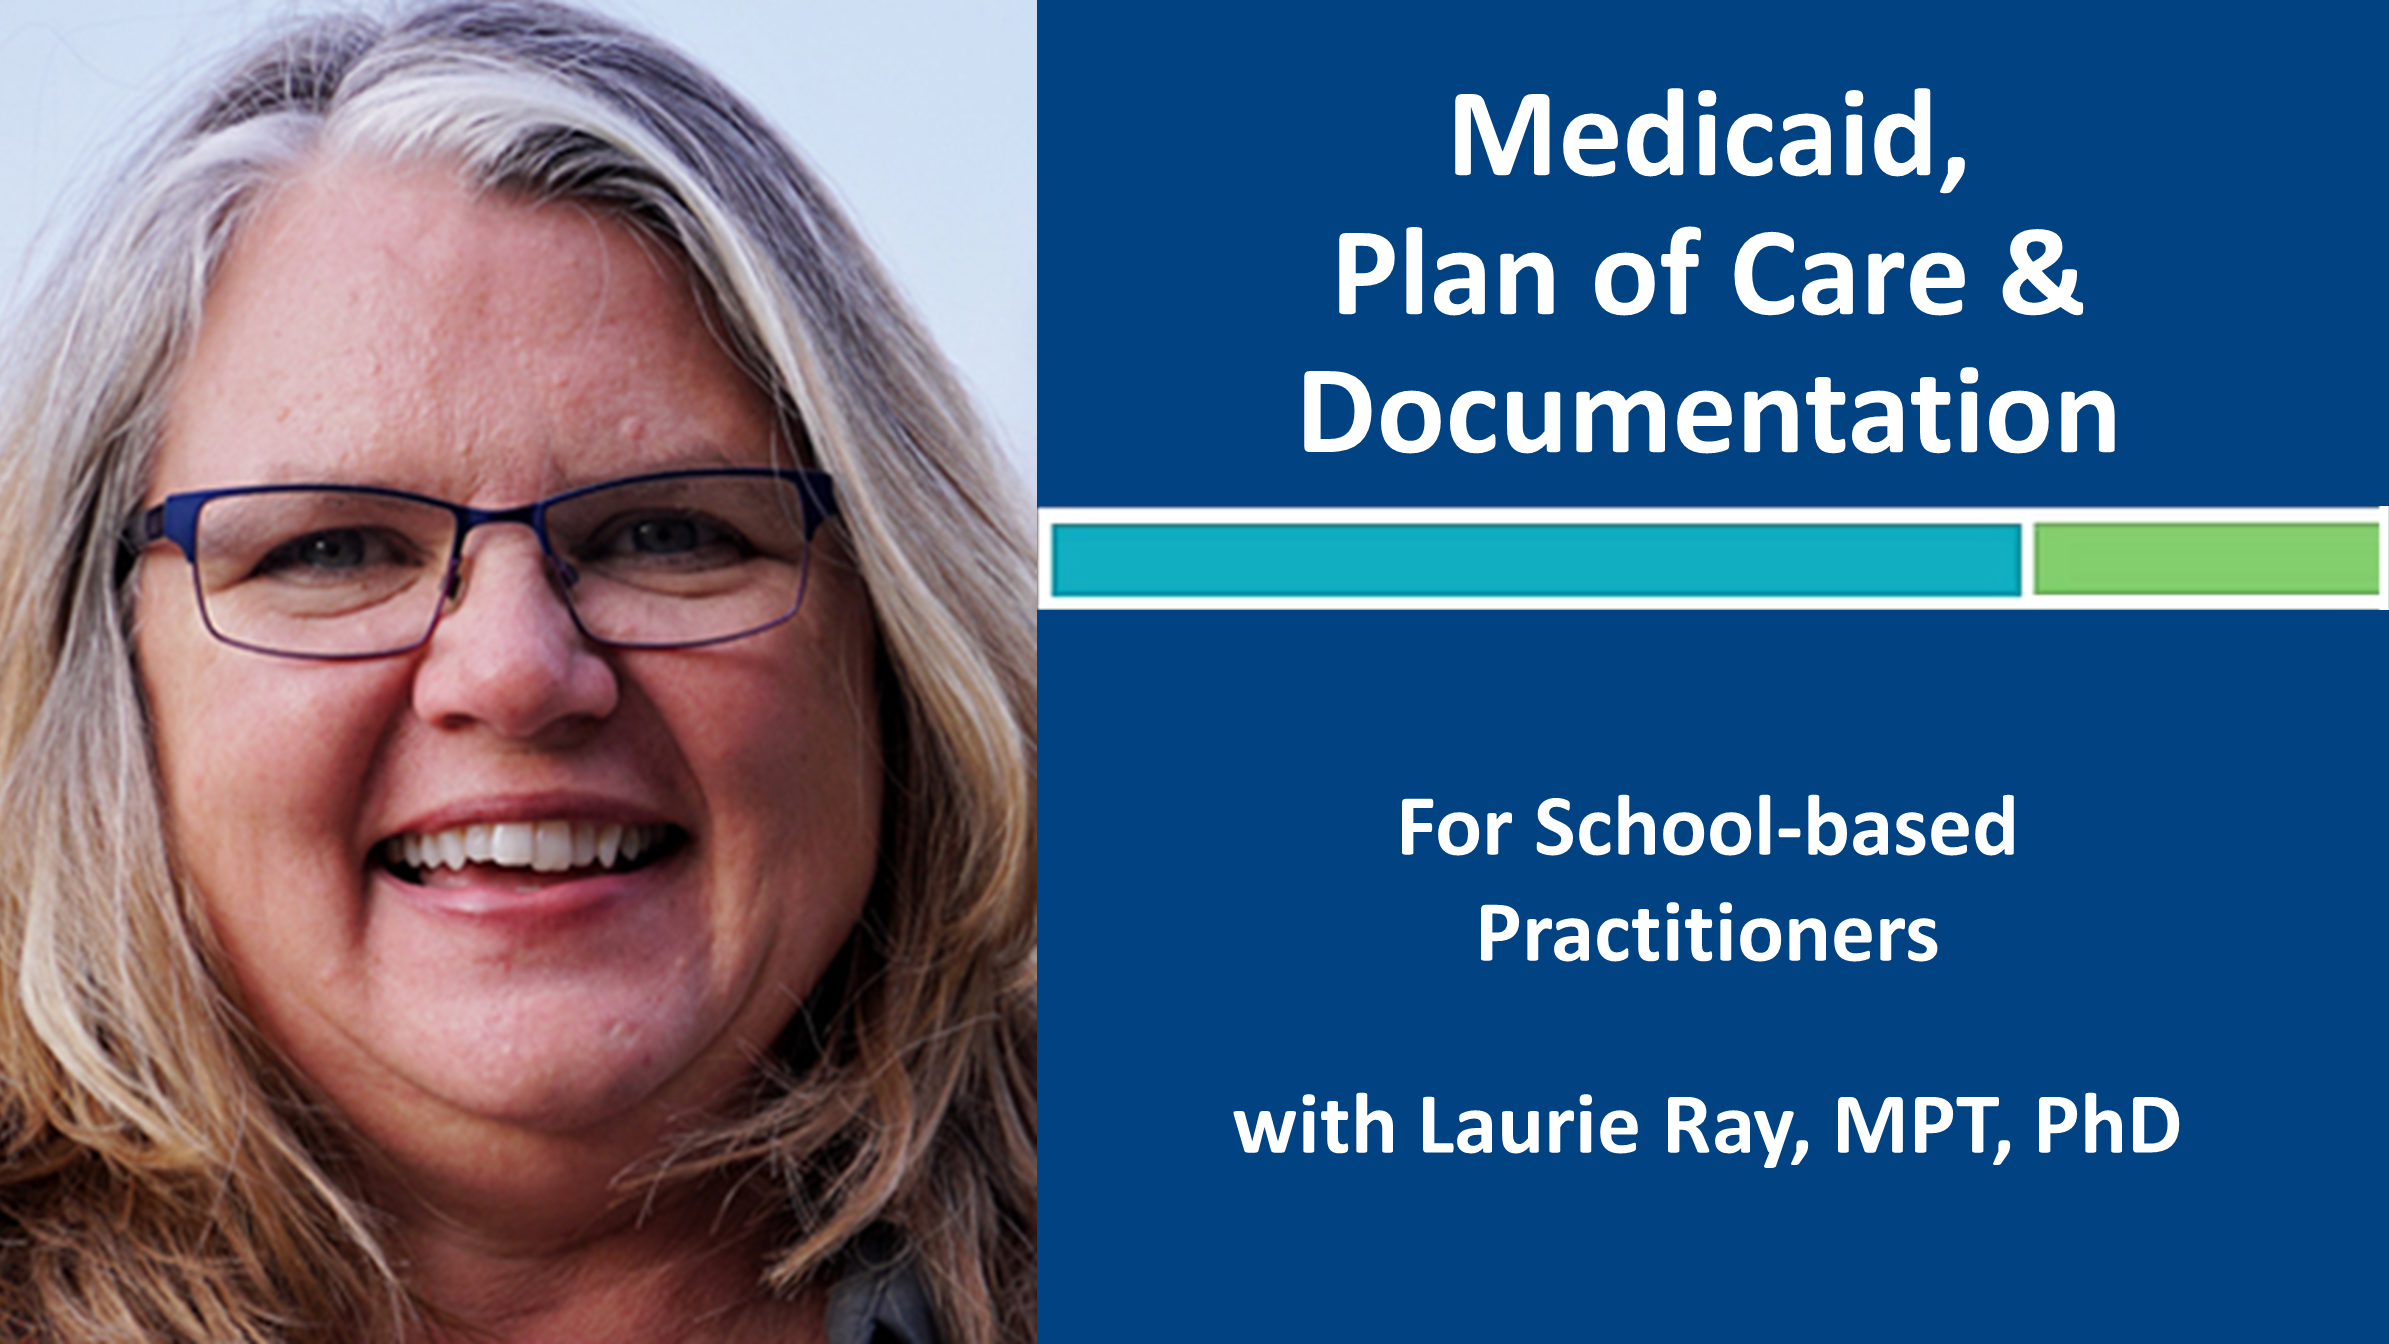 Webinar 3: Medicaid, Plan of Care and Documentation with Laurie Ray, MPT, PhD